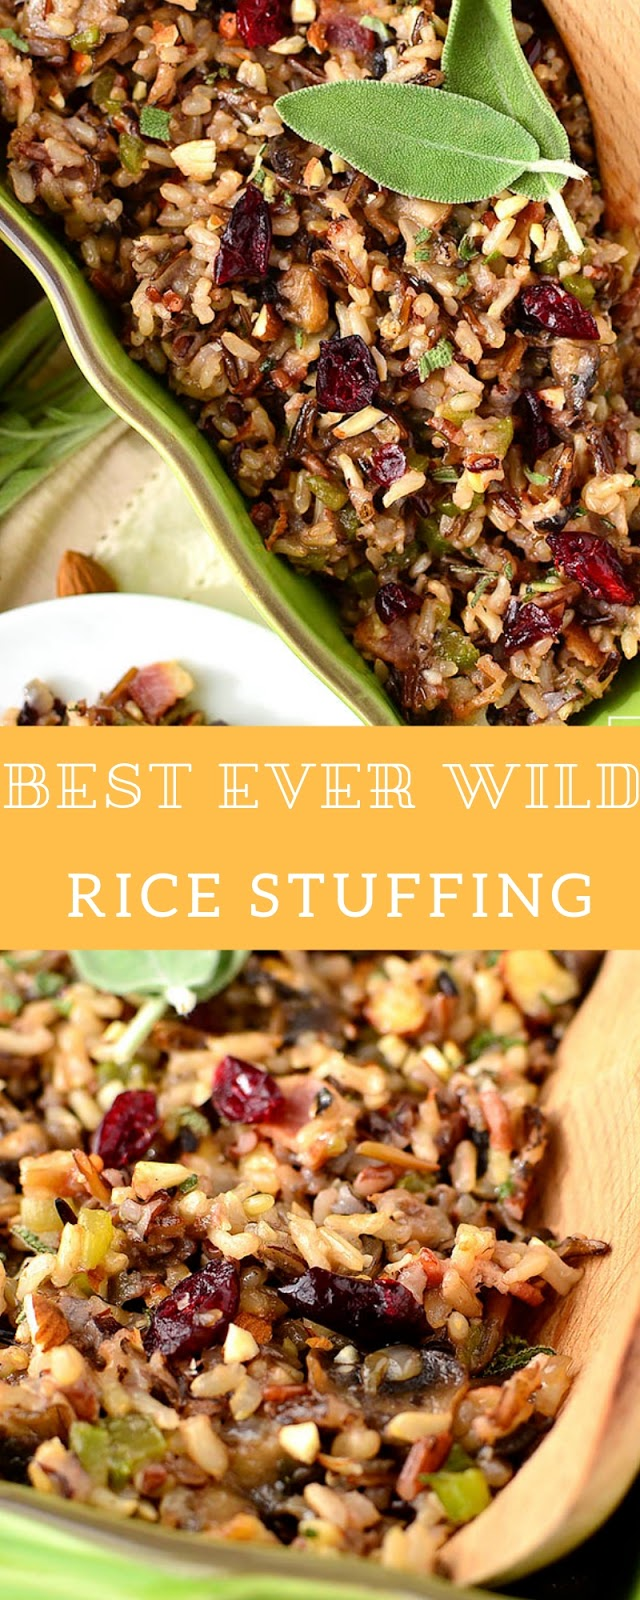 Best Ever Wild Rice Stuffing